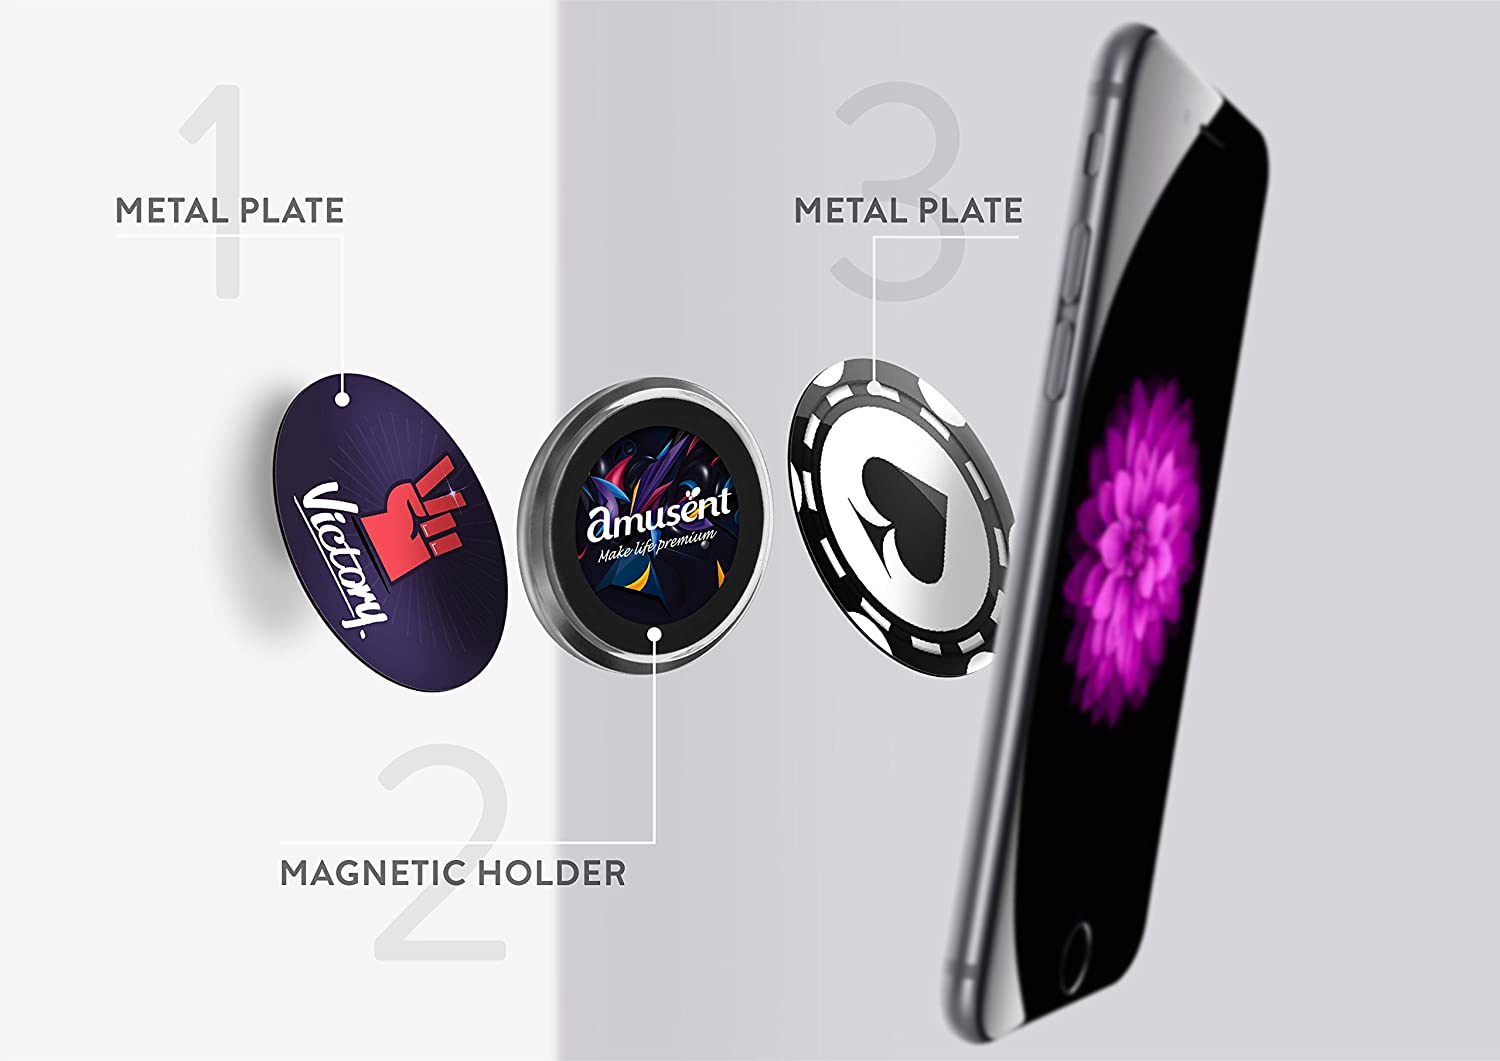 7 Google Android and More Fits All Smartphones 7 Plus Magnetic Cell Phone Holder by Amusent- Magnetic Crystal Holder for iPhone X 8 8 Plus Fathers Day Offer Huawei Samsung